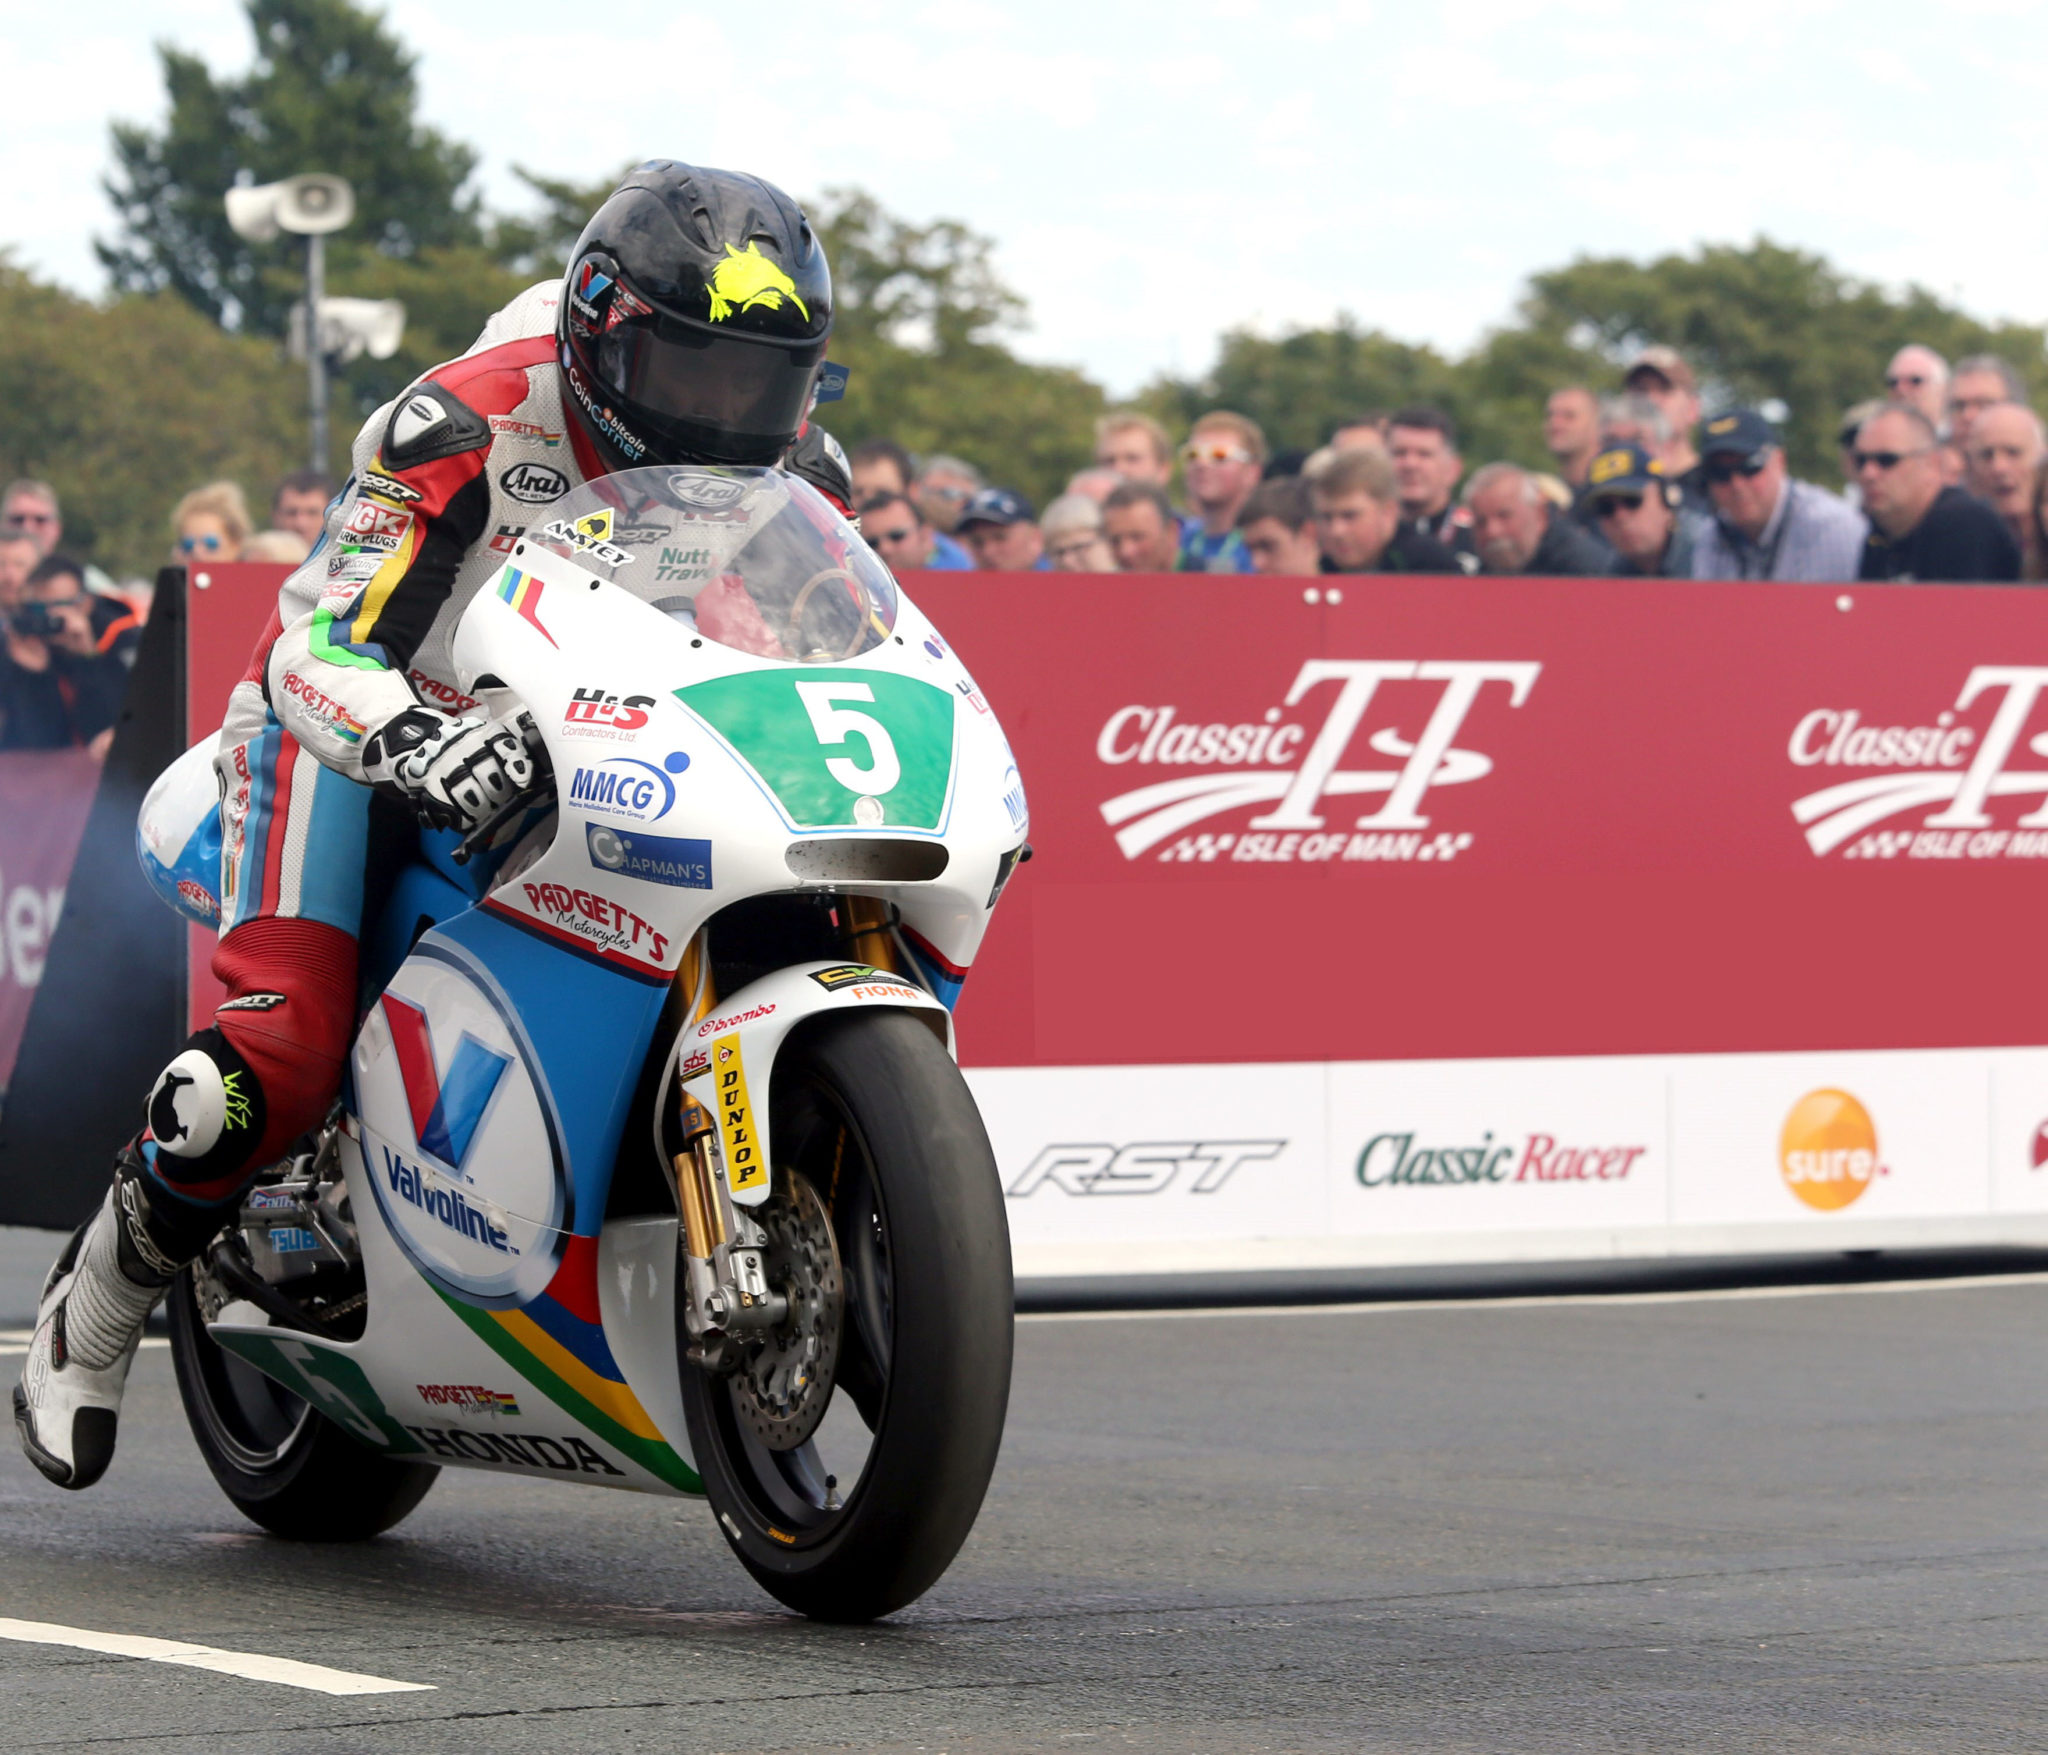 PACEMAKER, BELFAST, 27/8/2016: Bruce Anstey (Valvoline Padgetts